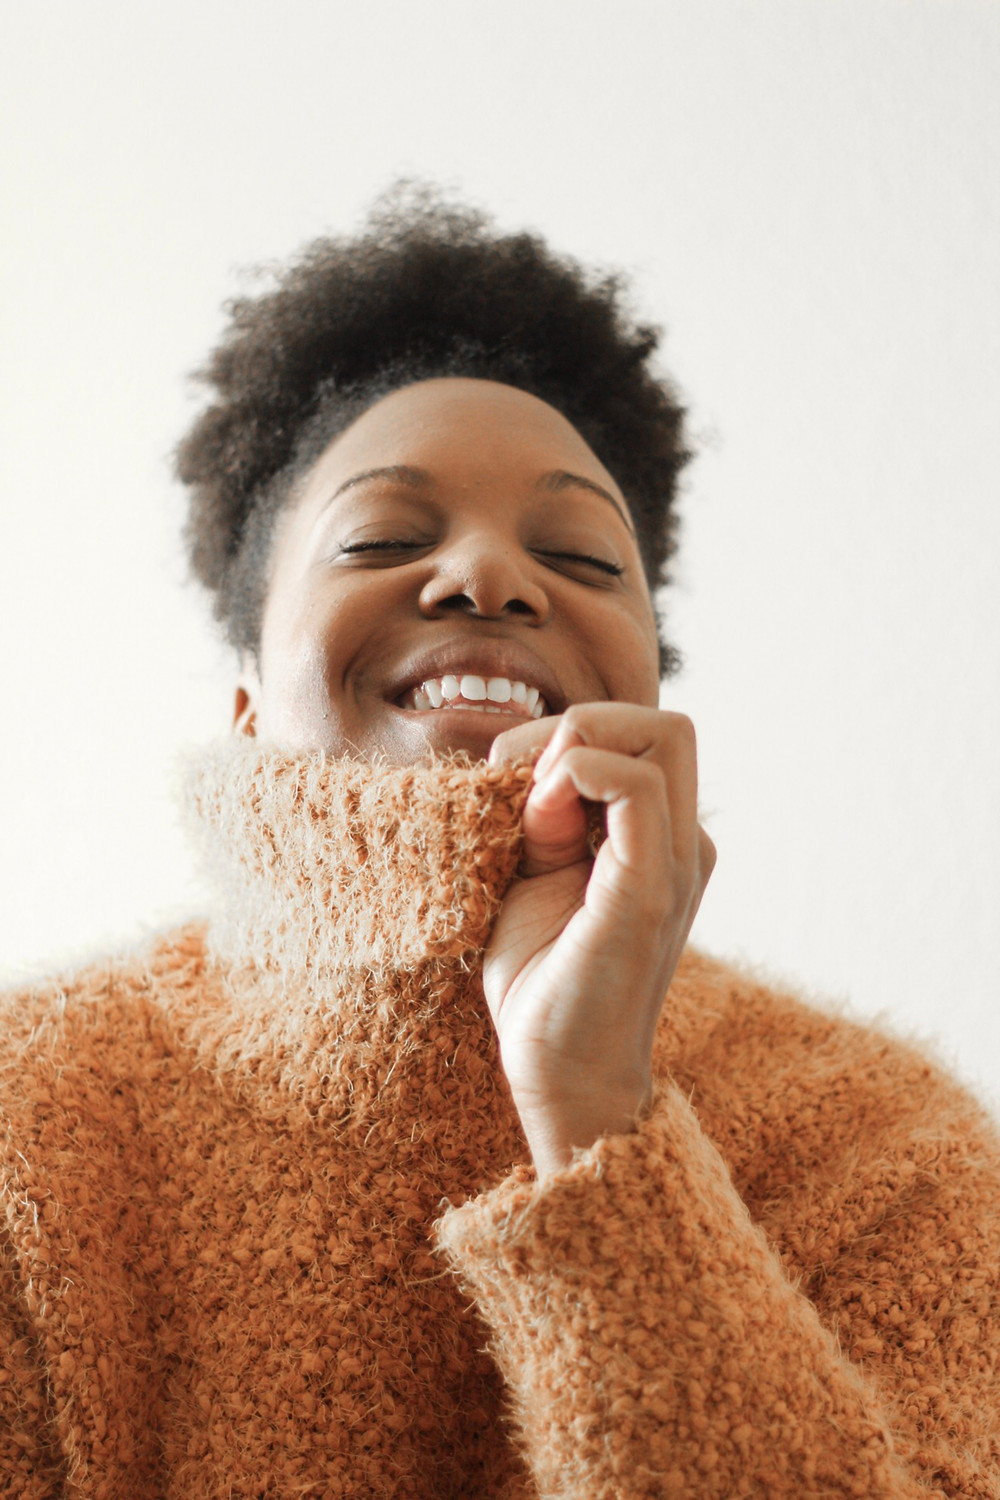 A person in a fluffy orange turtleneck smiles with their eyes closed as they pull the neck of the sweater up over their mouth.